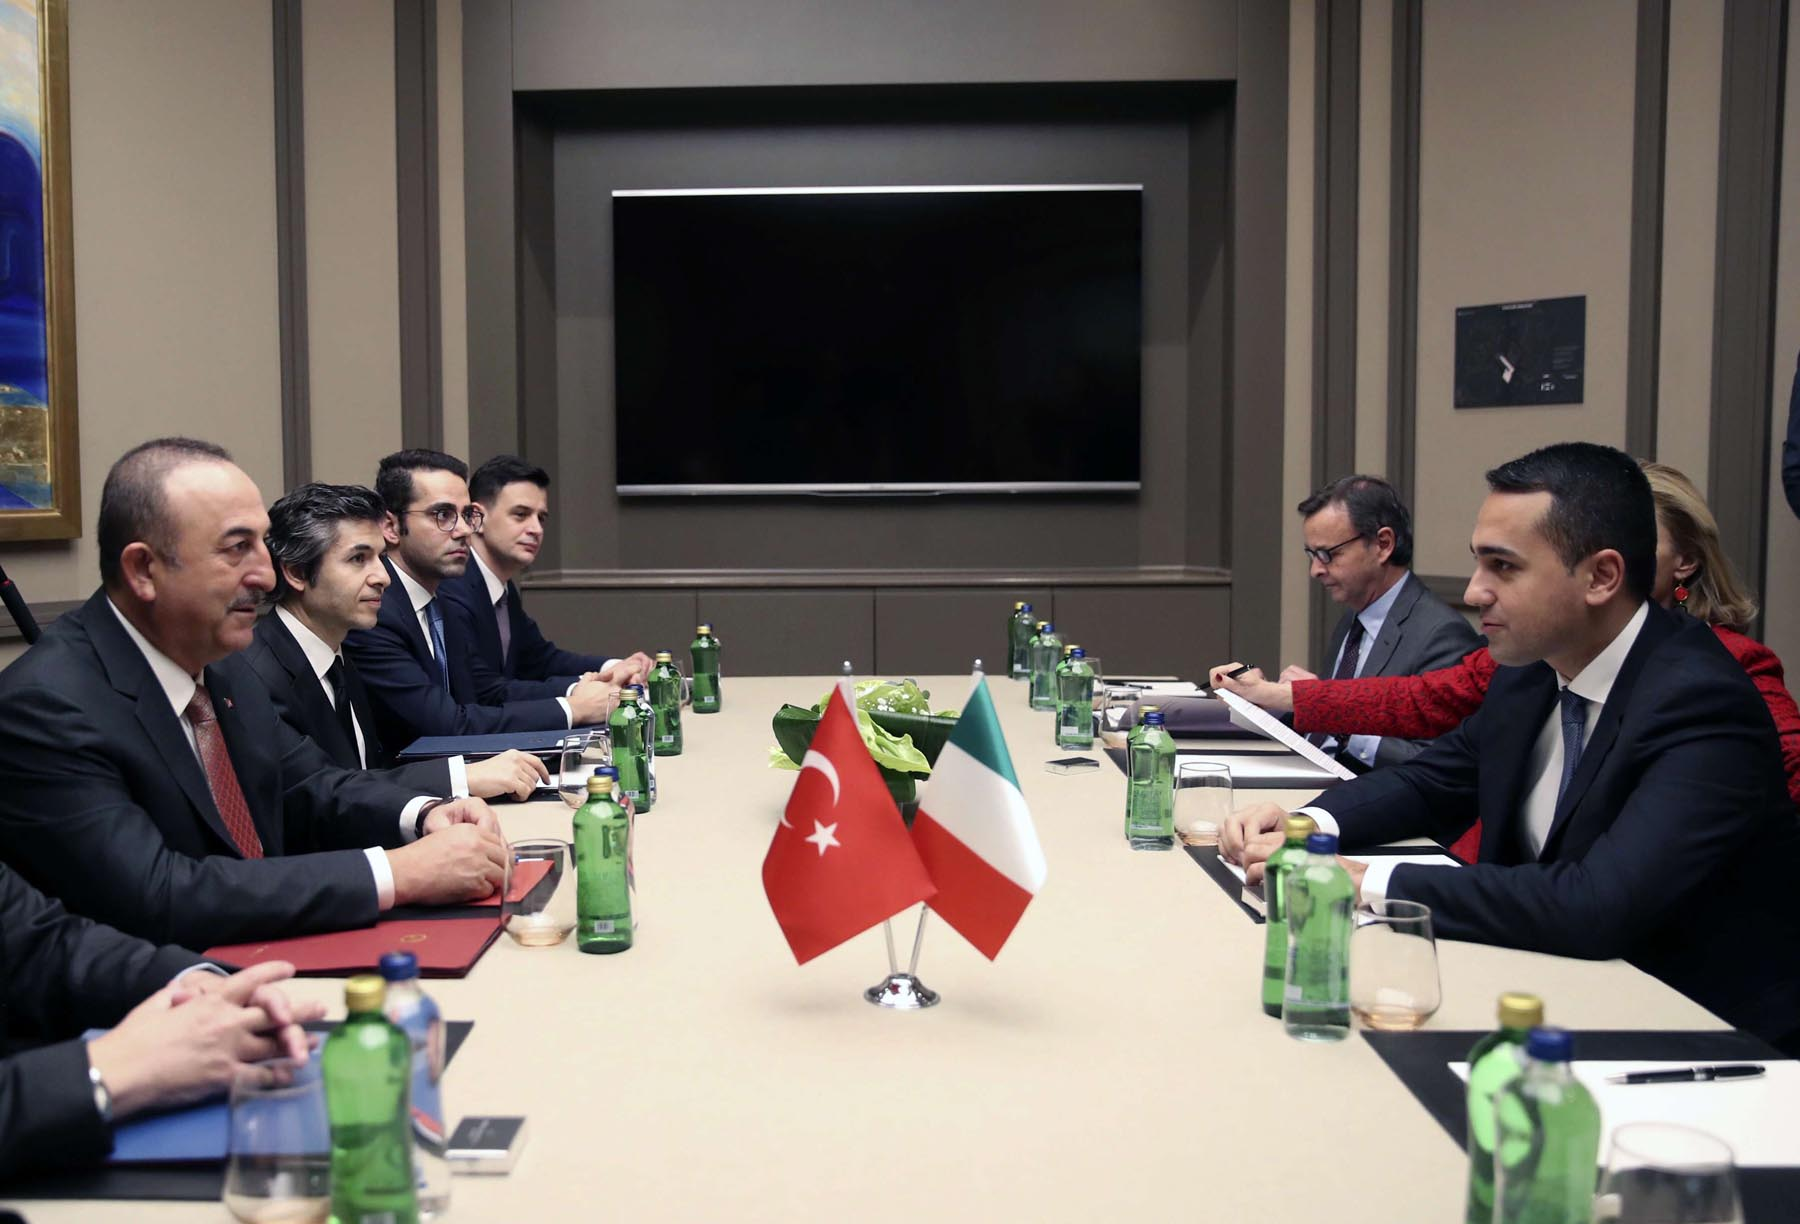 Turkey's Foreign Minister Mevlut Cavusoglu, left, and Italy's Foreign Minister Luigi Di Maio speak during a meeting, in Istanbul, late Tuesday, Jan. 7, 2020. The two expected to discuss the situation in Libya and Eastern Mediterranean.(Fatih Aktas/Turkish Foreign Ministry via AP, Pool)